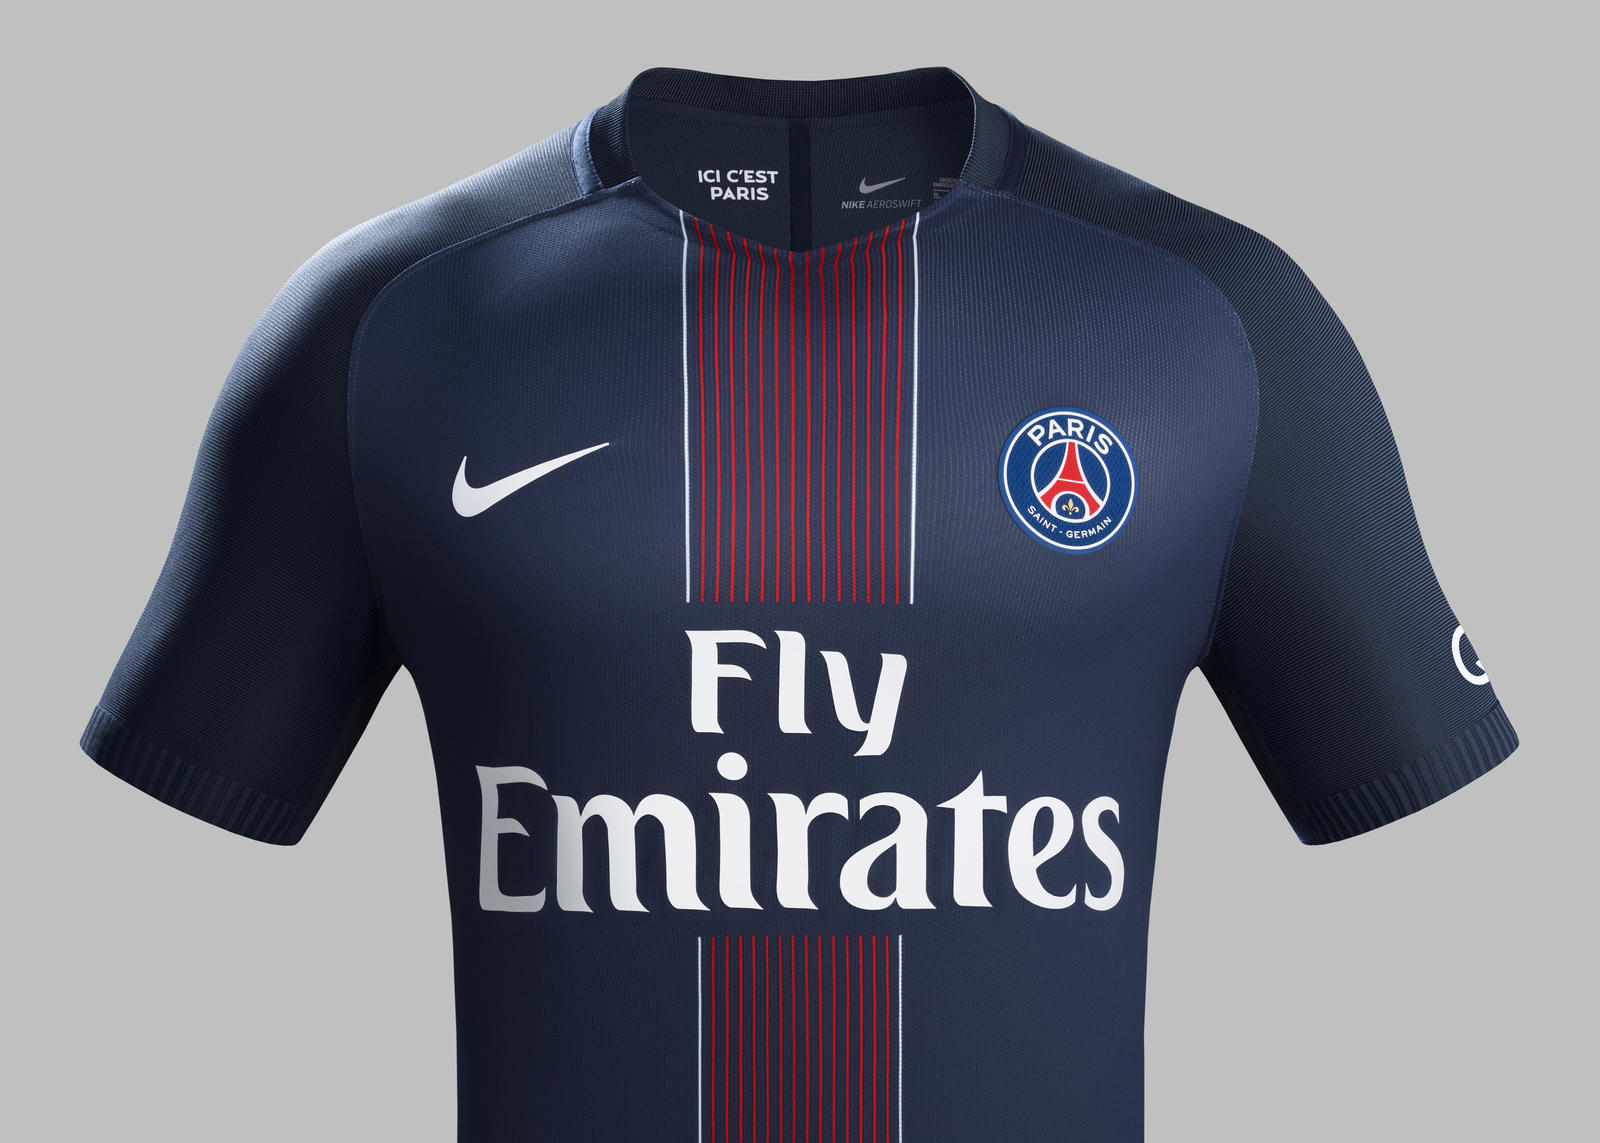 van volkswagen occasion - Nike News - Paris Saint-Germain Home Kit 2016-17